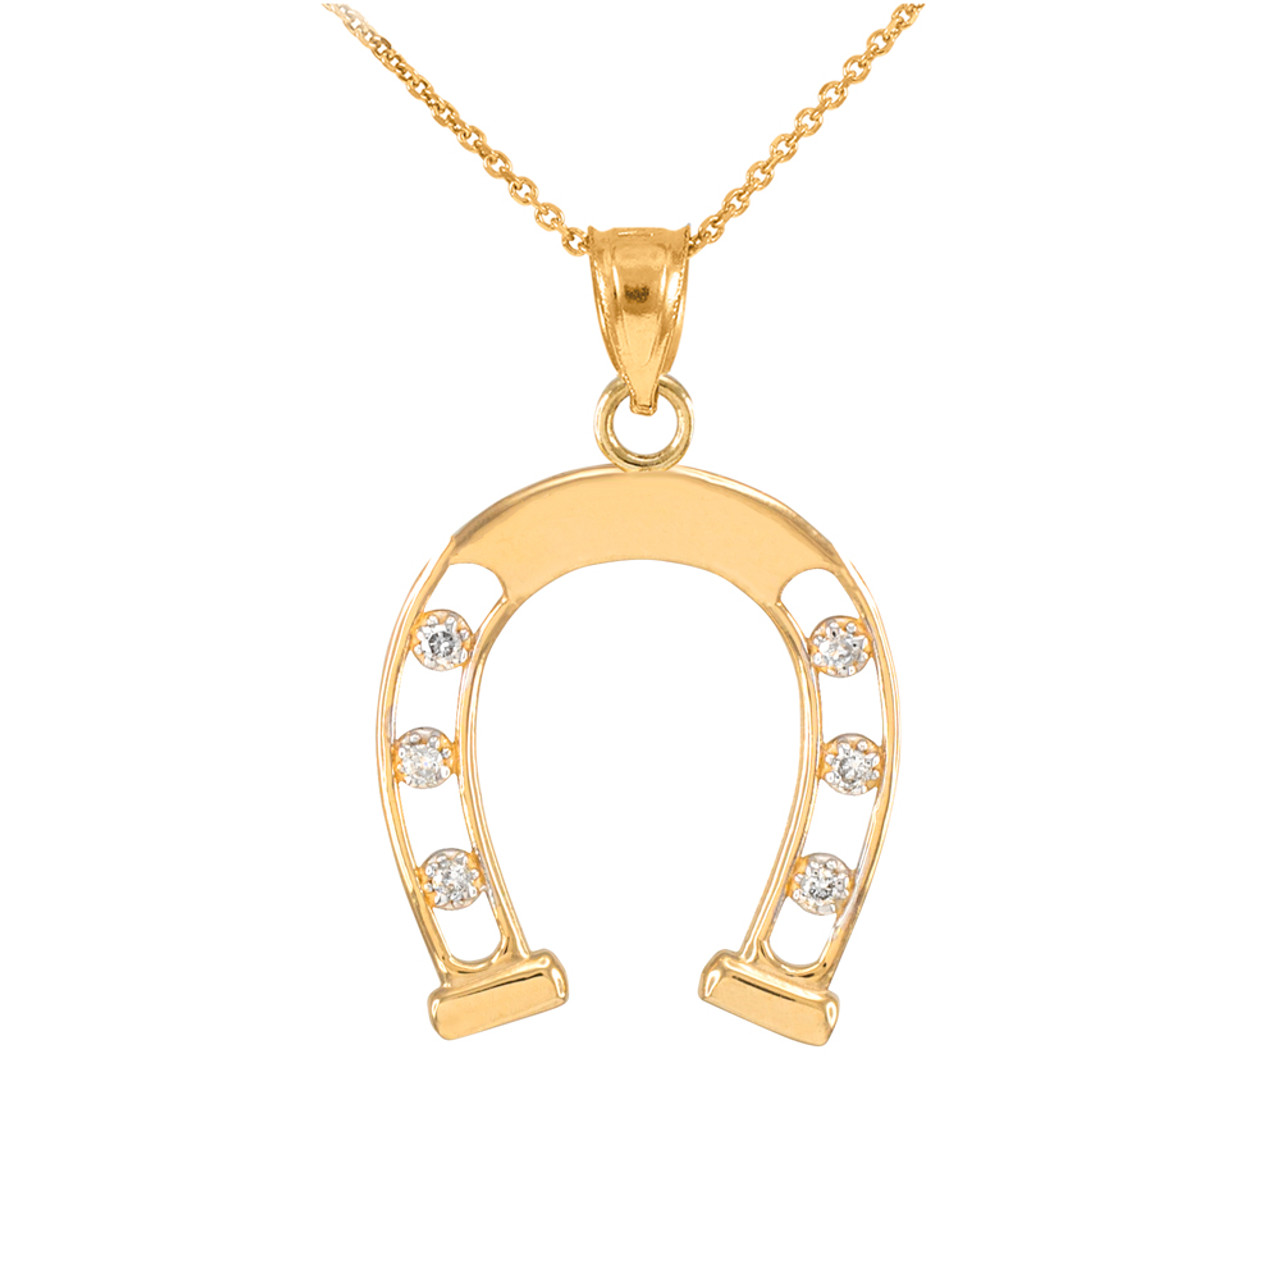 Gold open design good luck horseshoe diamond pendant necklace gold gold open design good luck horseshoe diamond pendant necklace aloadofball Image collections